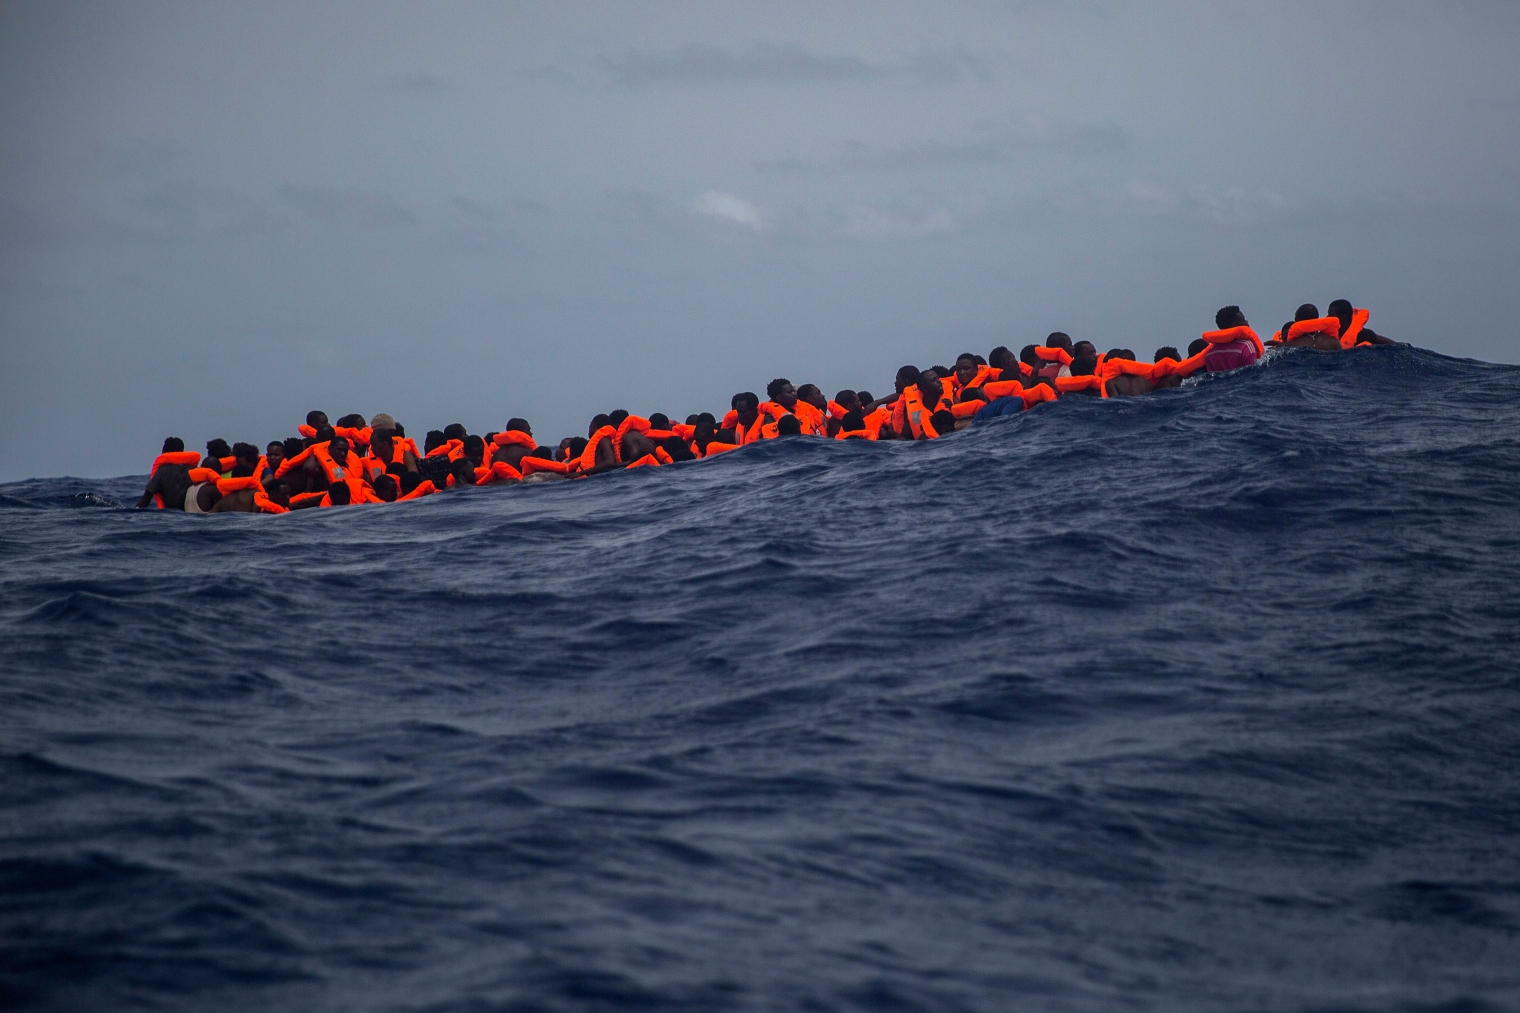 Sub-Saharan migrants who received life jackets wait to be transferred from the rubber boat to the Open Arms vessel of the Spanish NGO.